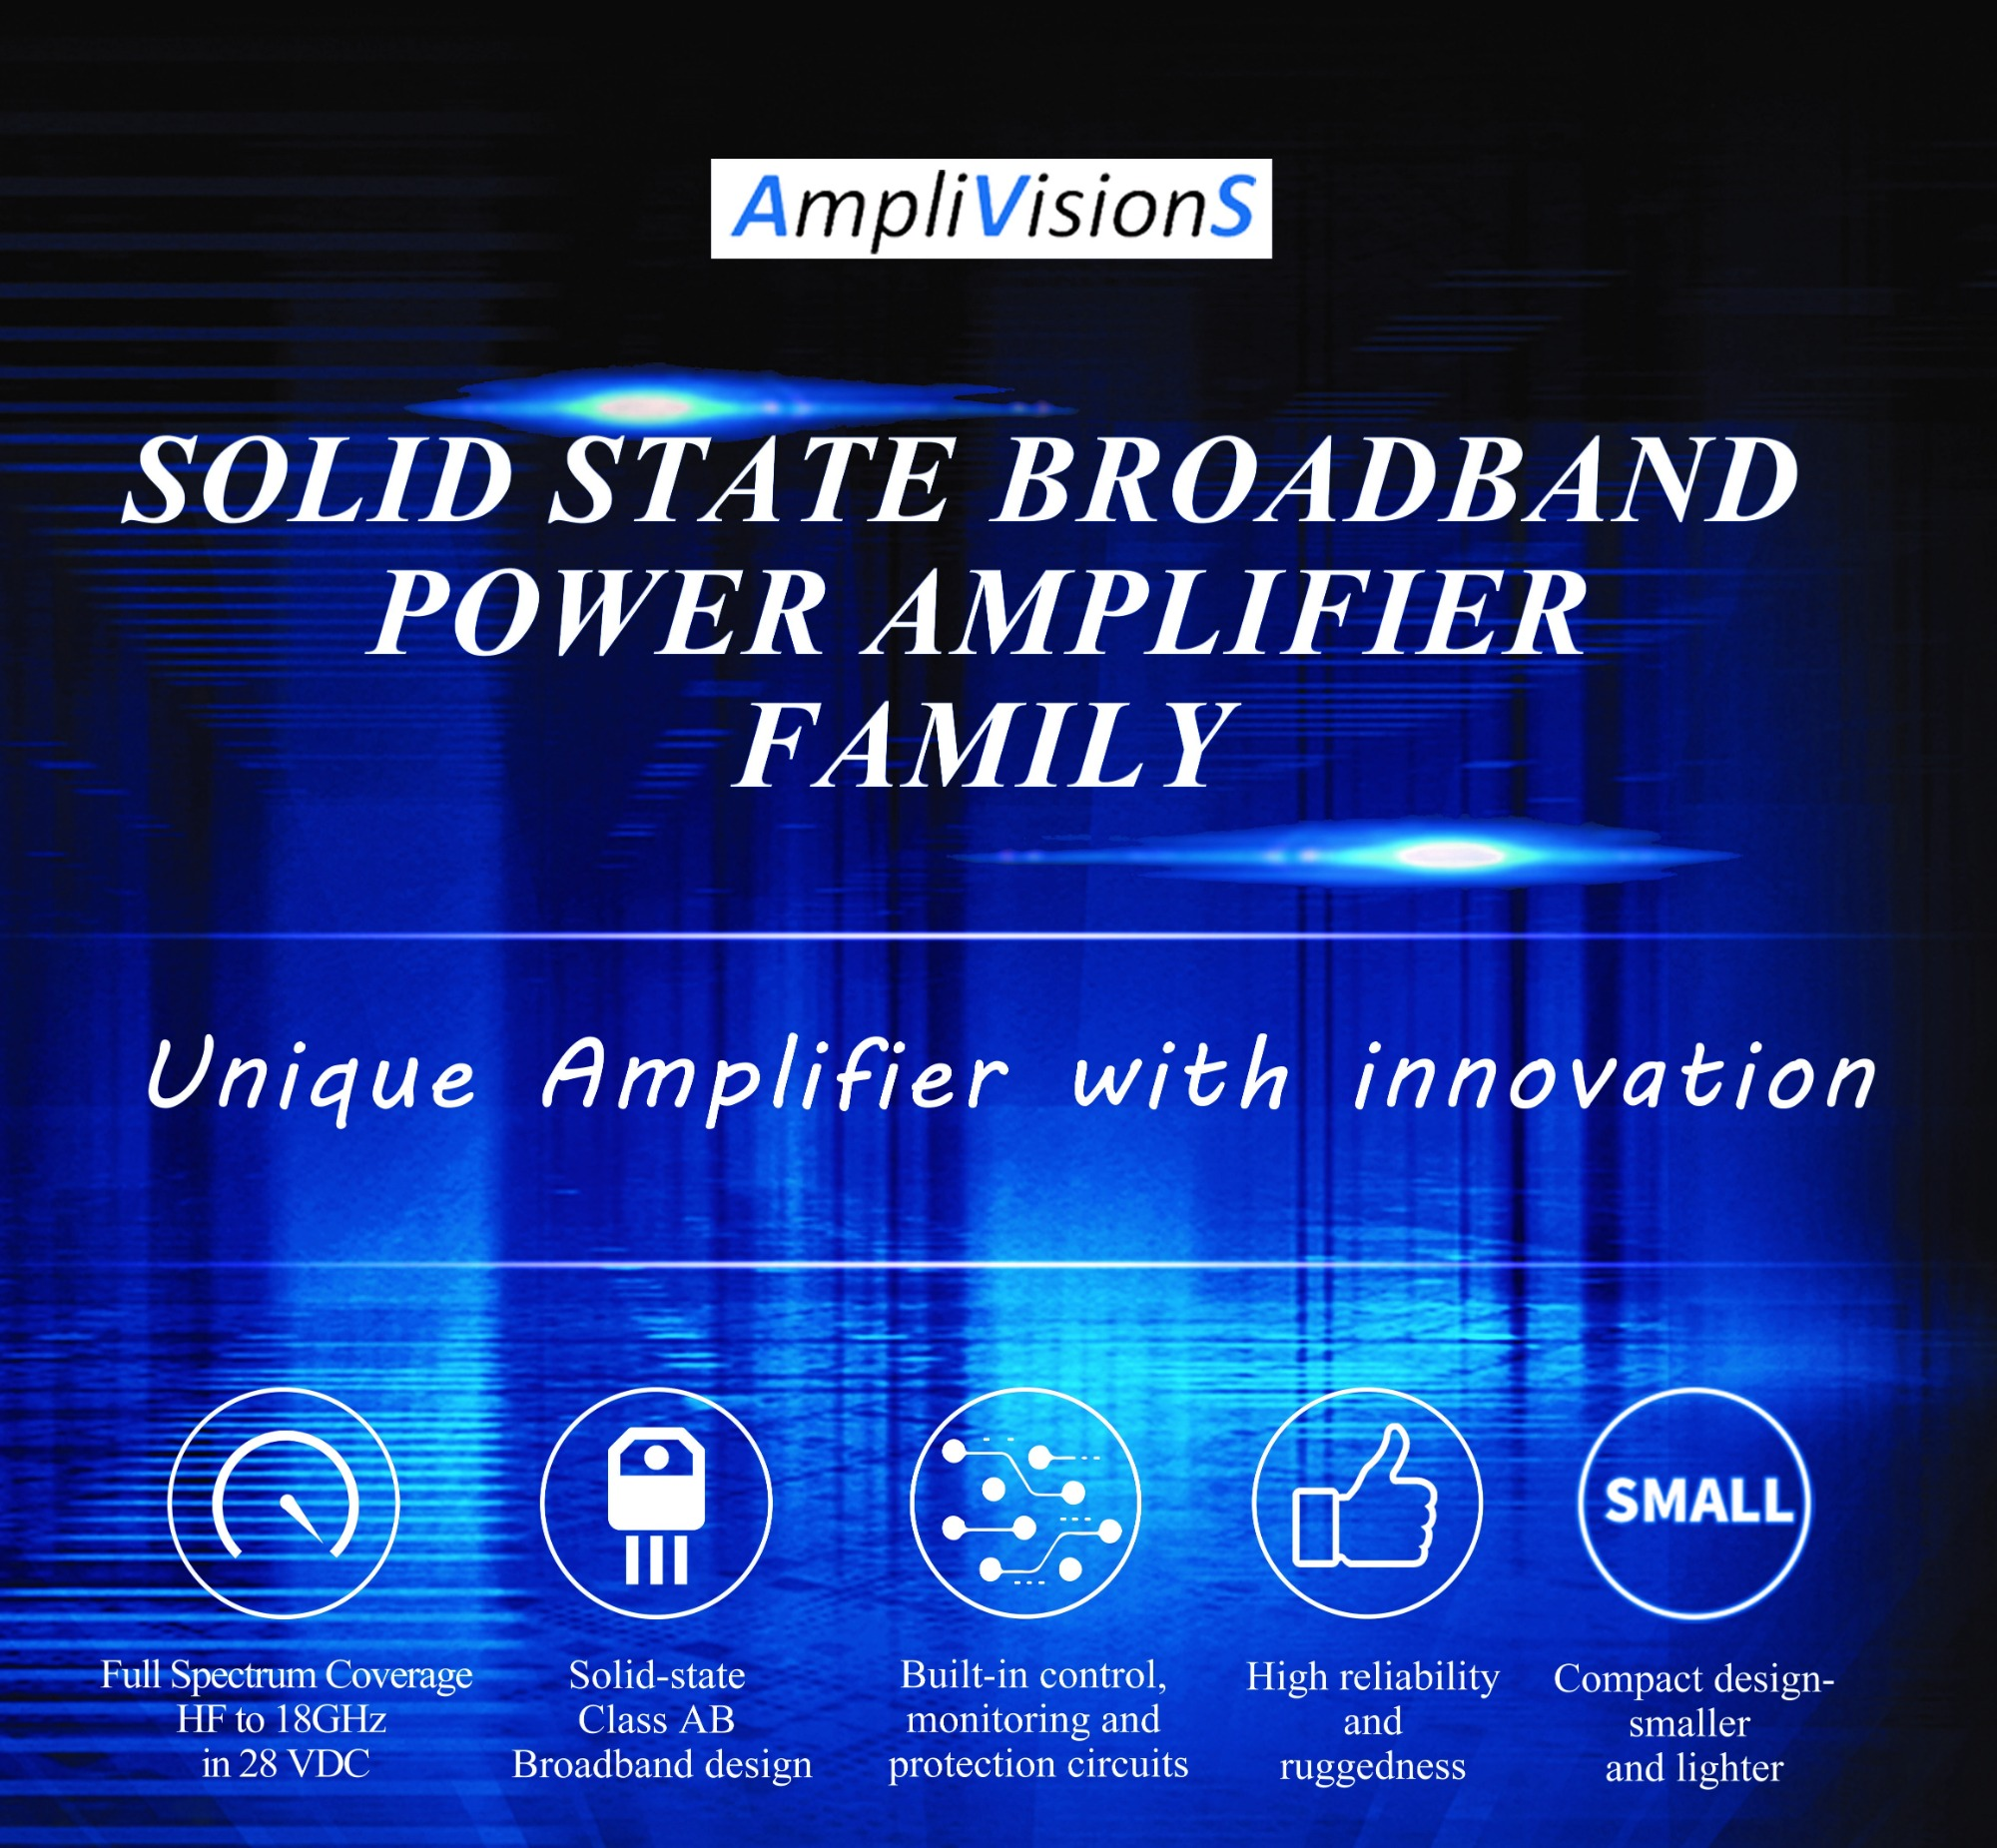 Solid State Broadband Power Amplifier FAMILY from AmpliVisionS